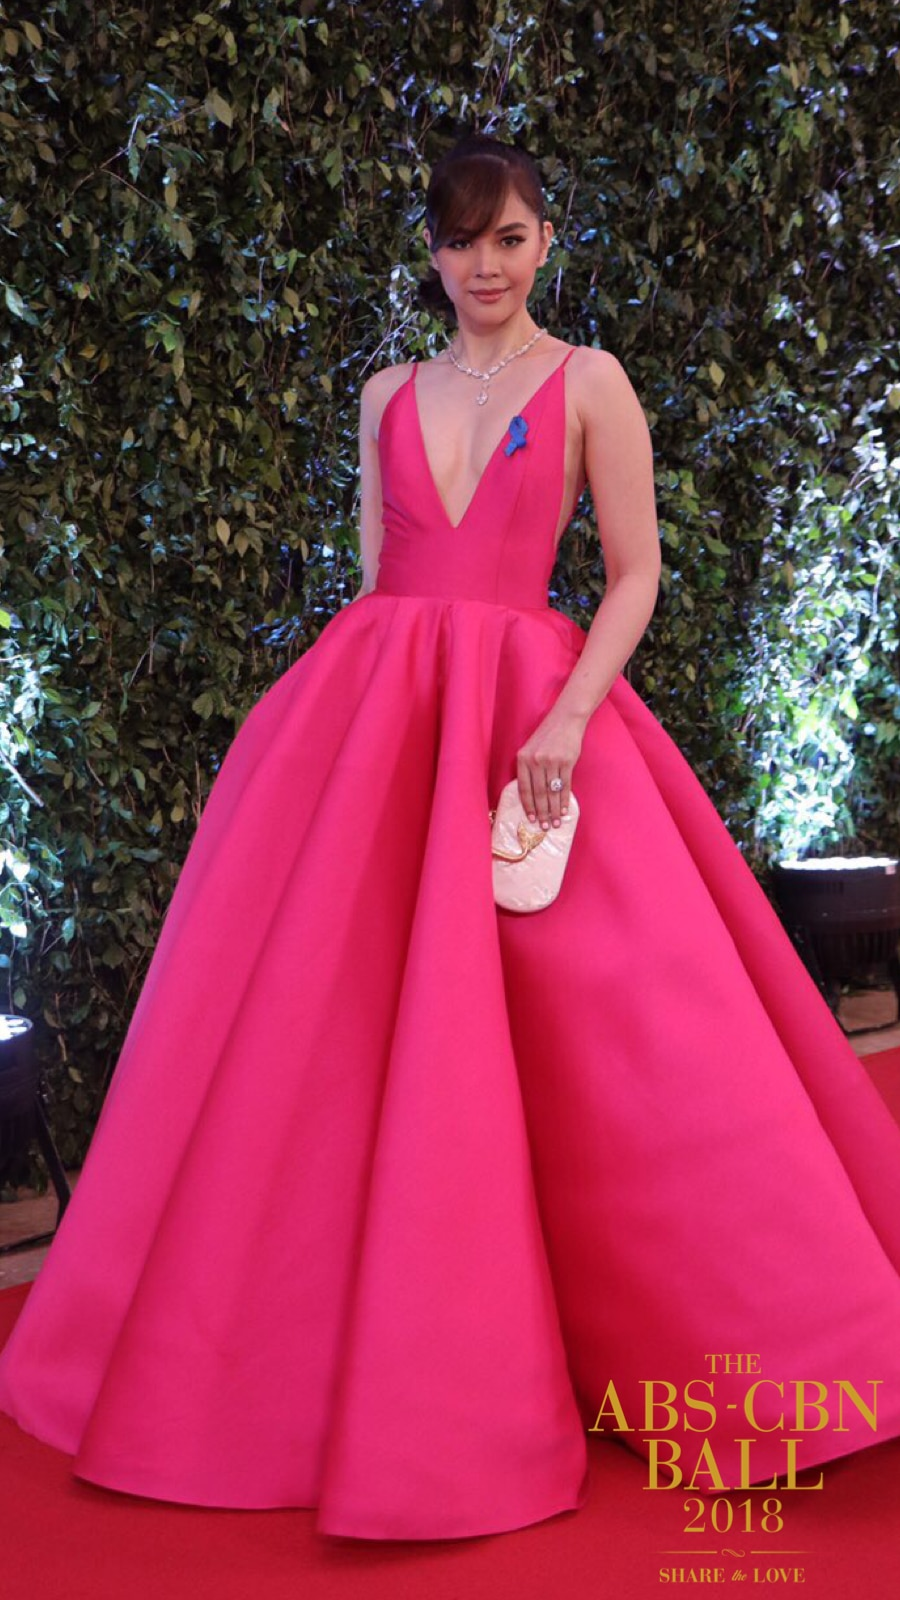 Scenes from the grand ABS-CBN Ball 2018 17